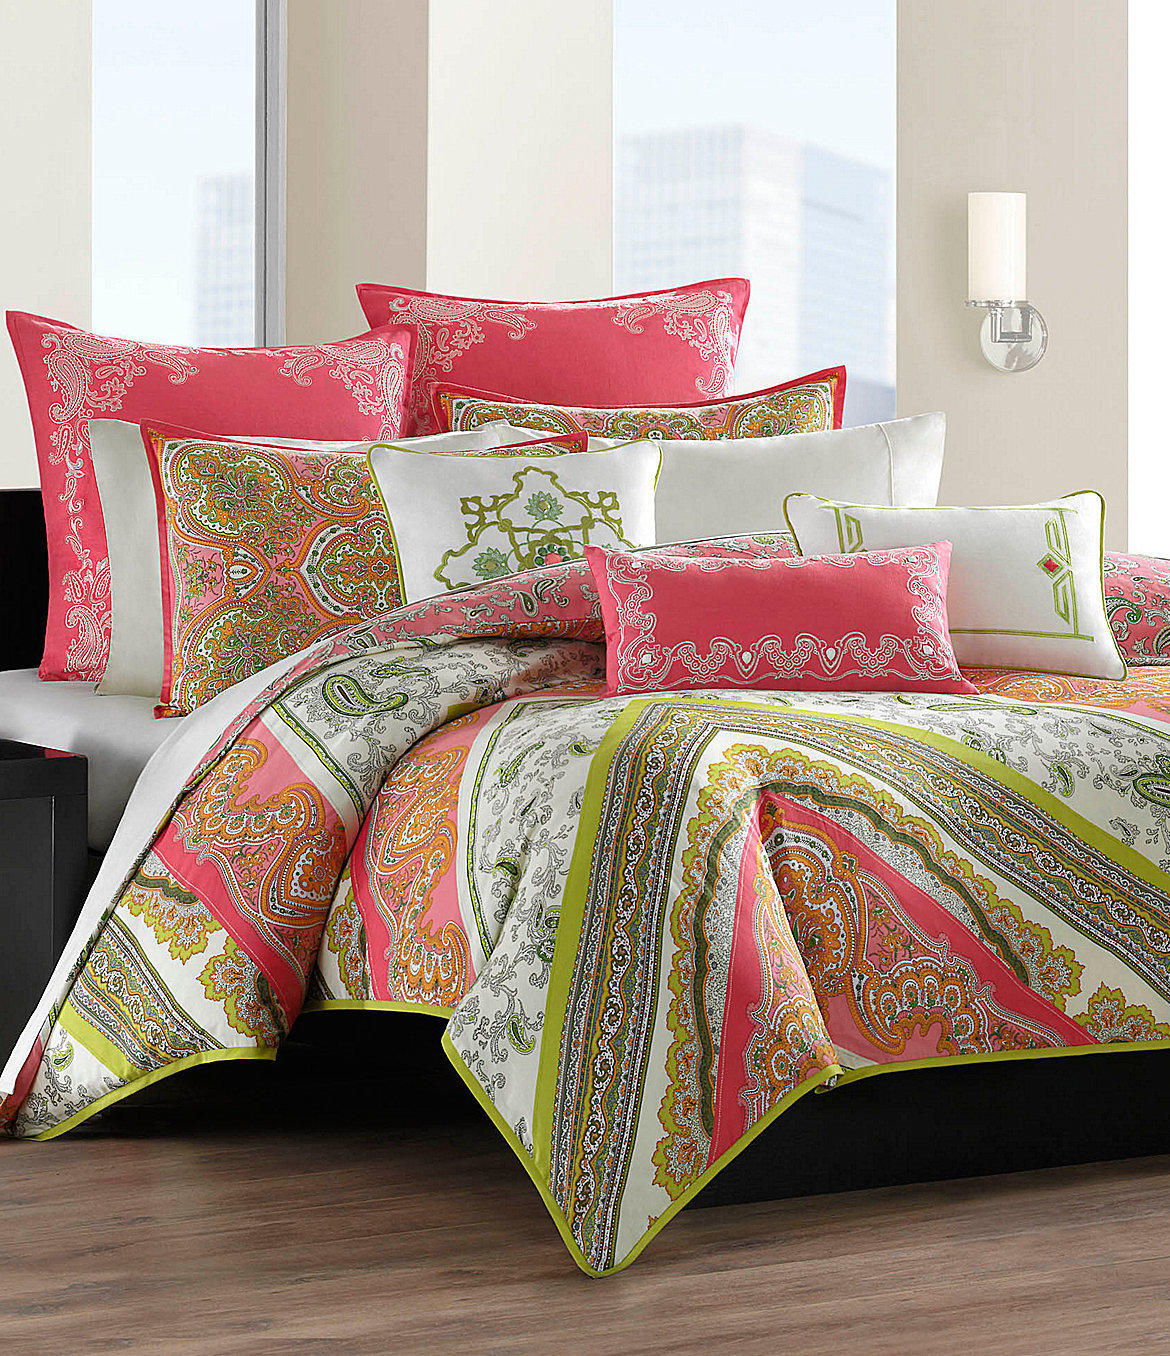 Echo Gramercy Paisley Bedding Collection From Dillard S